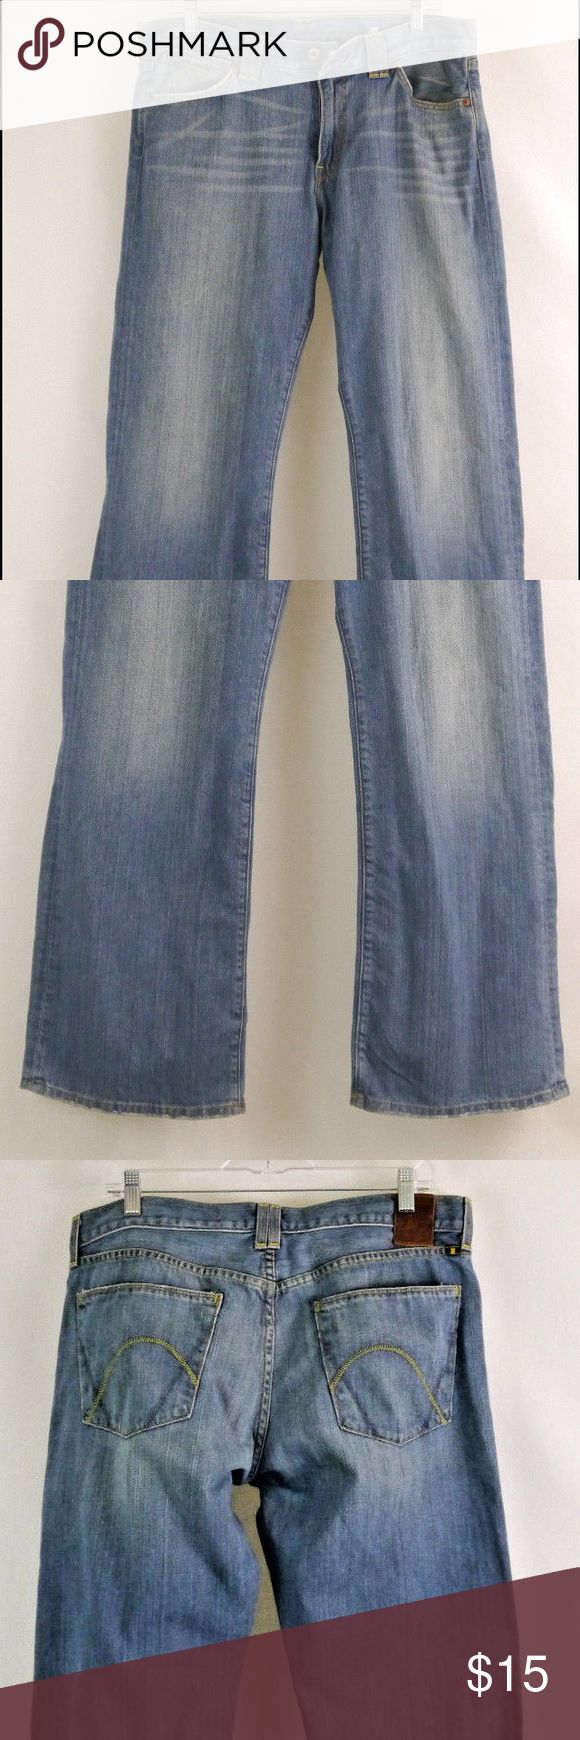 """Lucky Brand Dungarees """"Aged"""" Bootcut Men's 34 Pre-Owned Lucky Brand Dungarees """"Aged"""" Boot-cut Jeans Men's 34 in Great Condition  Small stain on back of left leg about 5"""" from leg opening.    Measurements:  Outseam: 40.5"""" / Rise: 11.5"""" / Waist: 18-18.5"""" / Hips 23"""" / Inseam: 31"""" / Leg Openings: 10""""    More pictures here:   http://www.ebay.com/itm/Lucky-Brand-Dungarees-034-Aged-034-Bootcut-Jeans-Men-039-s-34-/322398507964?ssPageName=STRK:MESE:IT Lucky Brand Jeans Bootcut"""